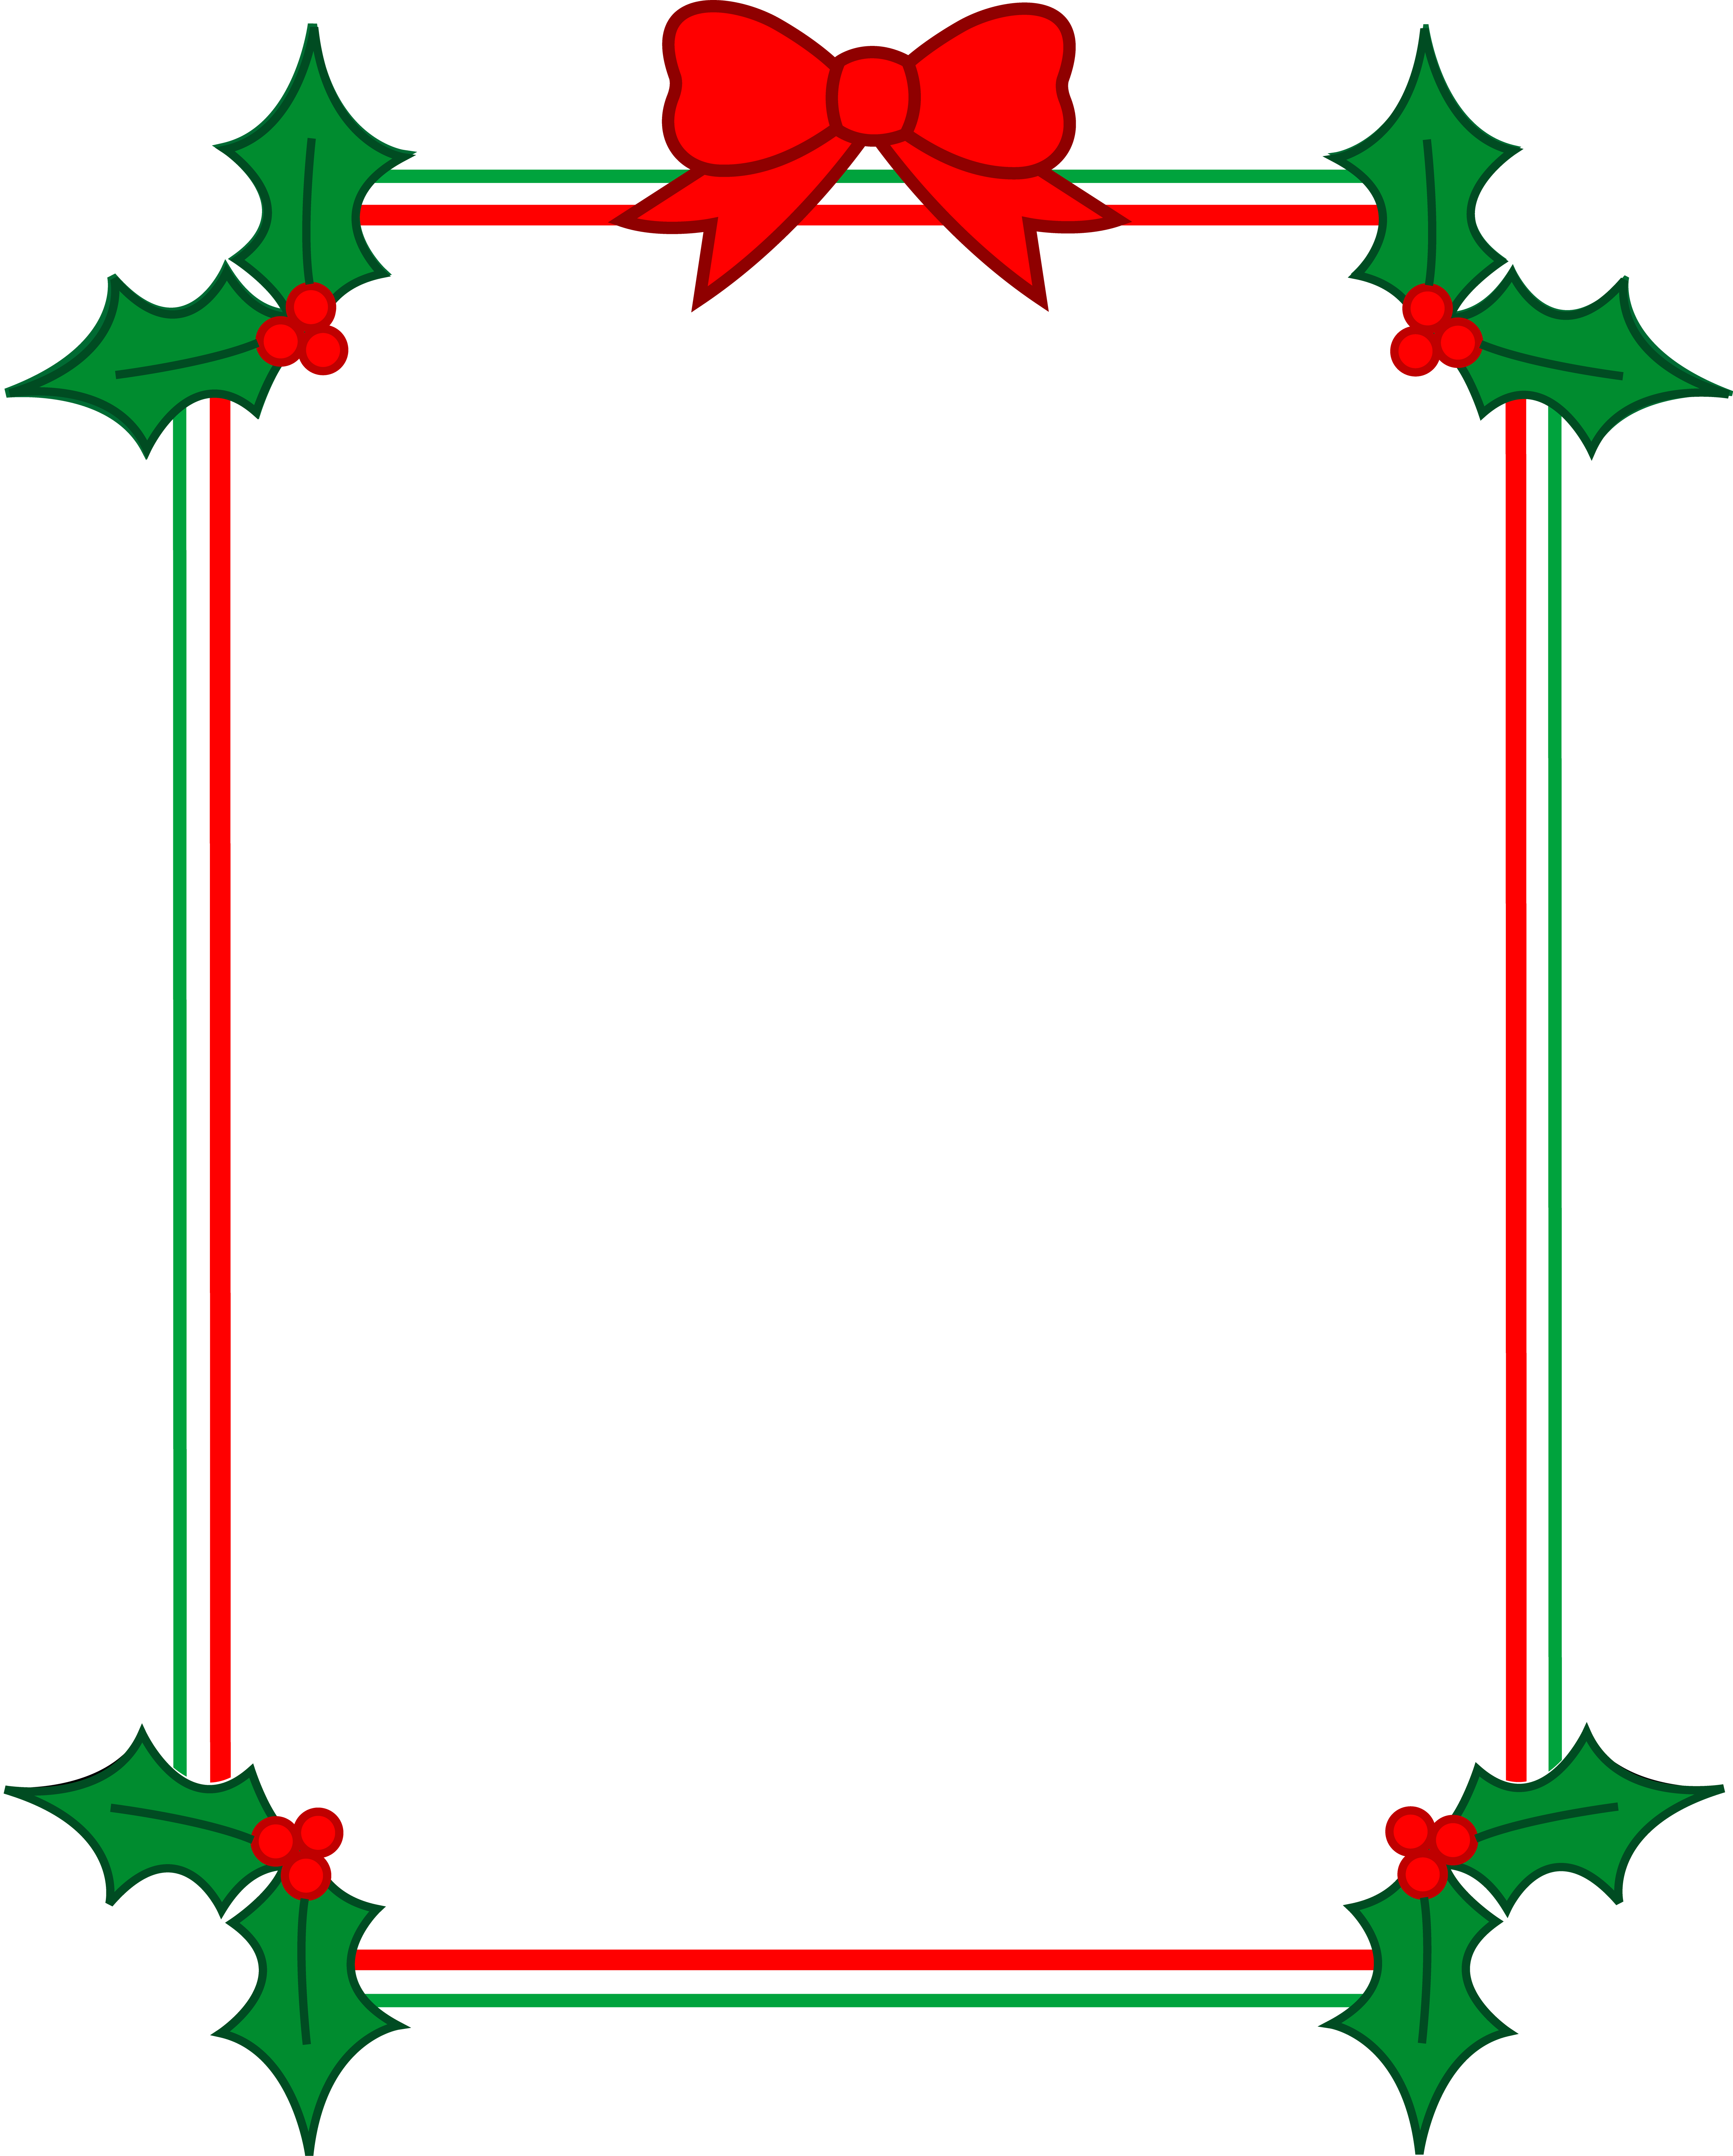 Png clipart panda free. Christmas borders .png svg black and white